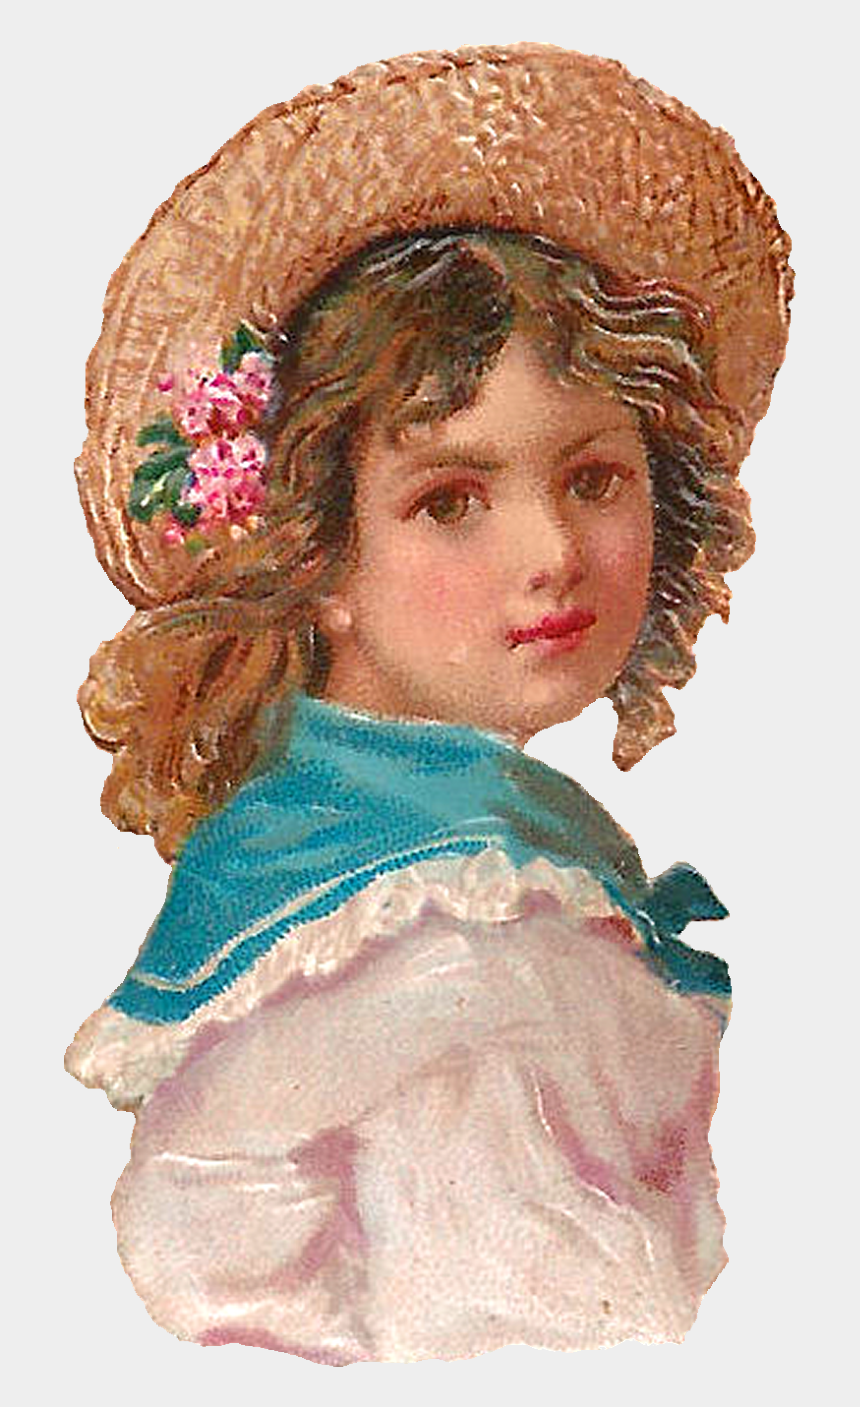 headdress clipart, Cartoons - The Second Digital Girl Image Shows Another Pretty - Girl